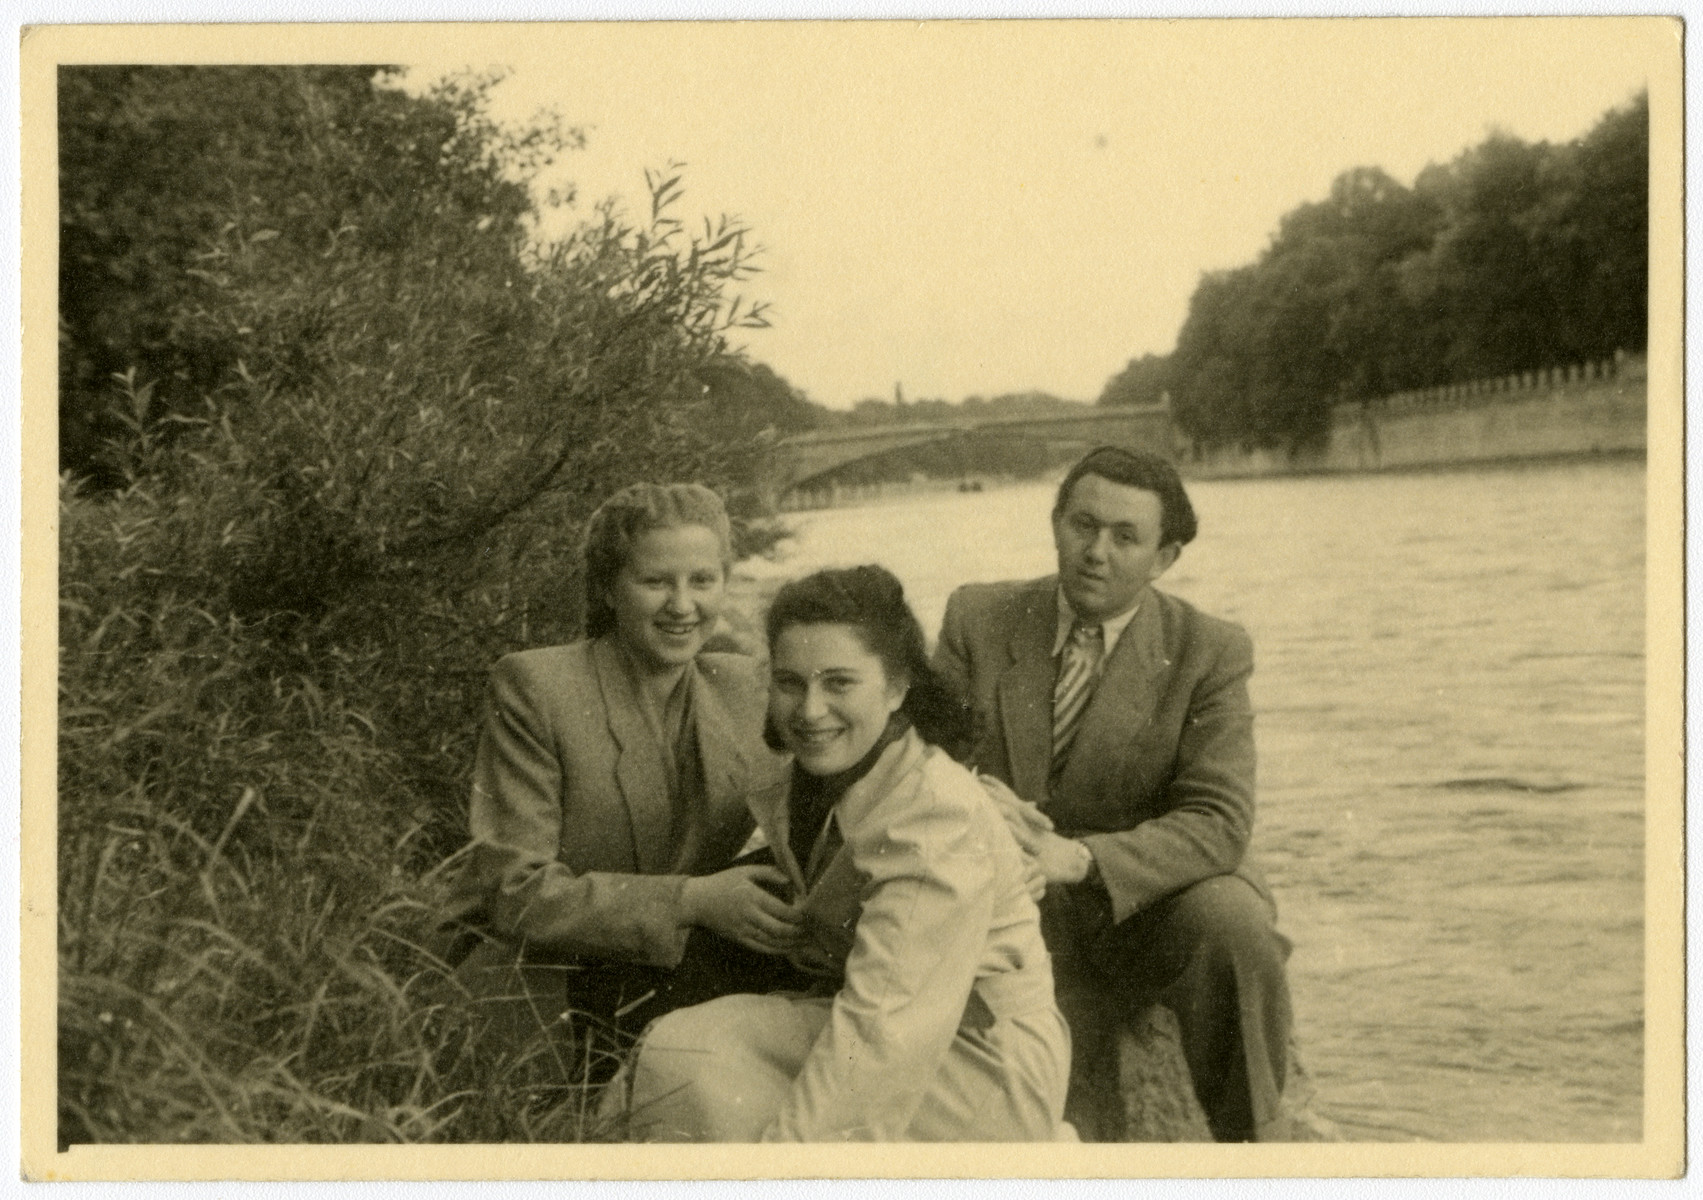 Three friends sit on the bank of the Starnberger Sea in the Feldafing displaced persons camp.  Pictured are Luba Kerschenblat, Frieda Wilner and Yeshayahu Zycer.